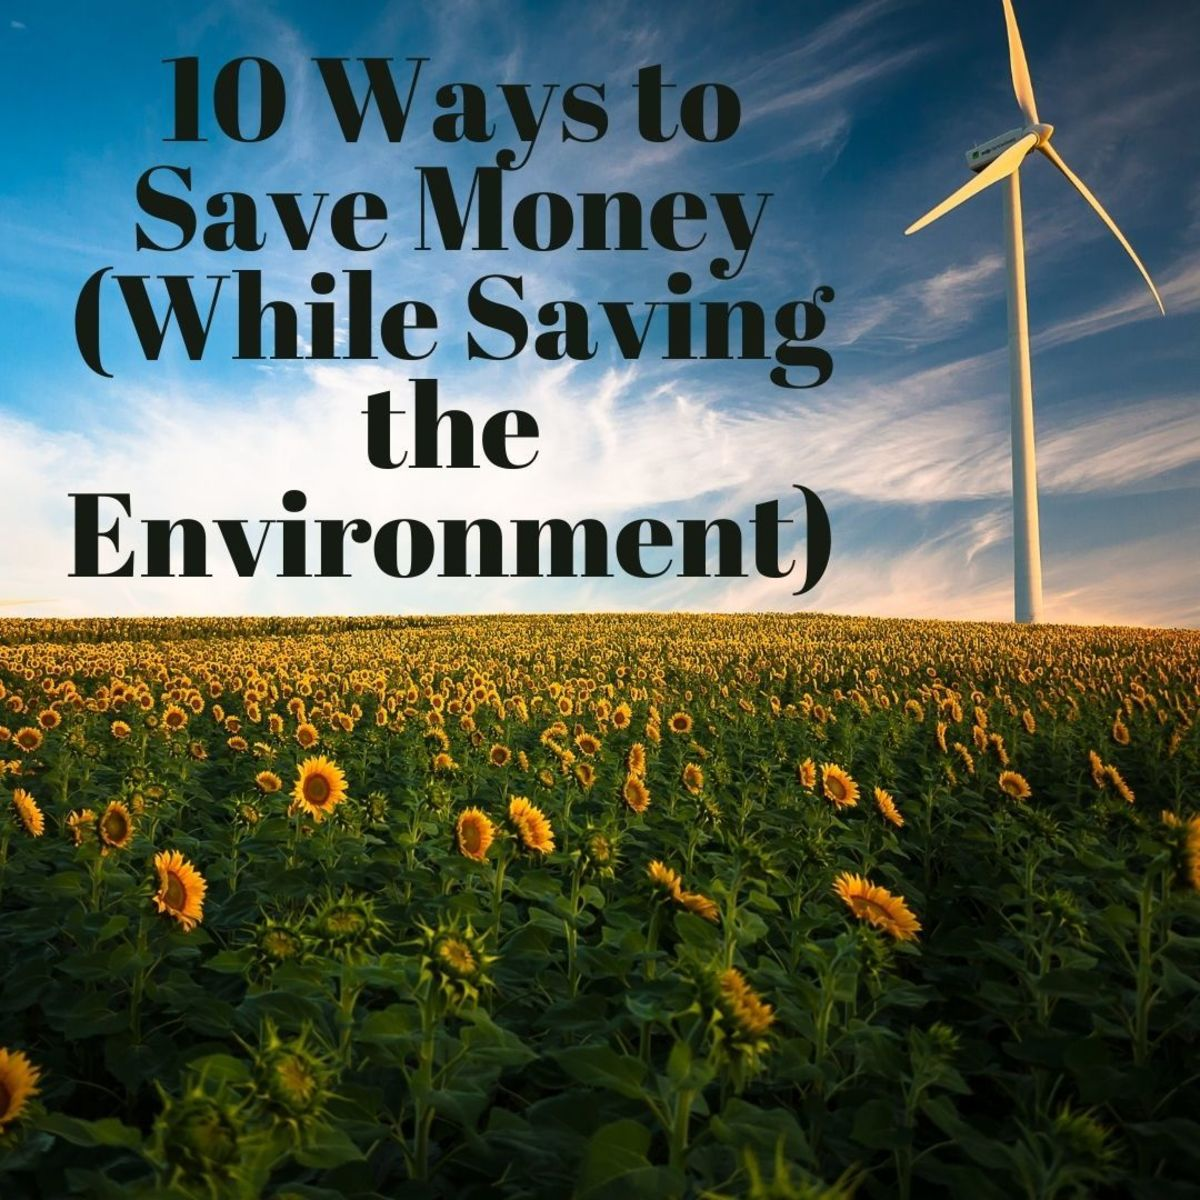 10 Ways to Save Money While Protecting the Environment